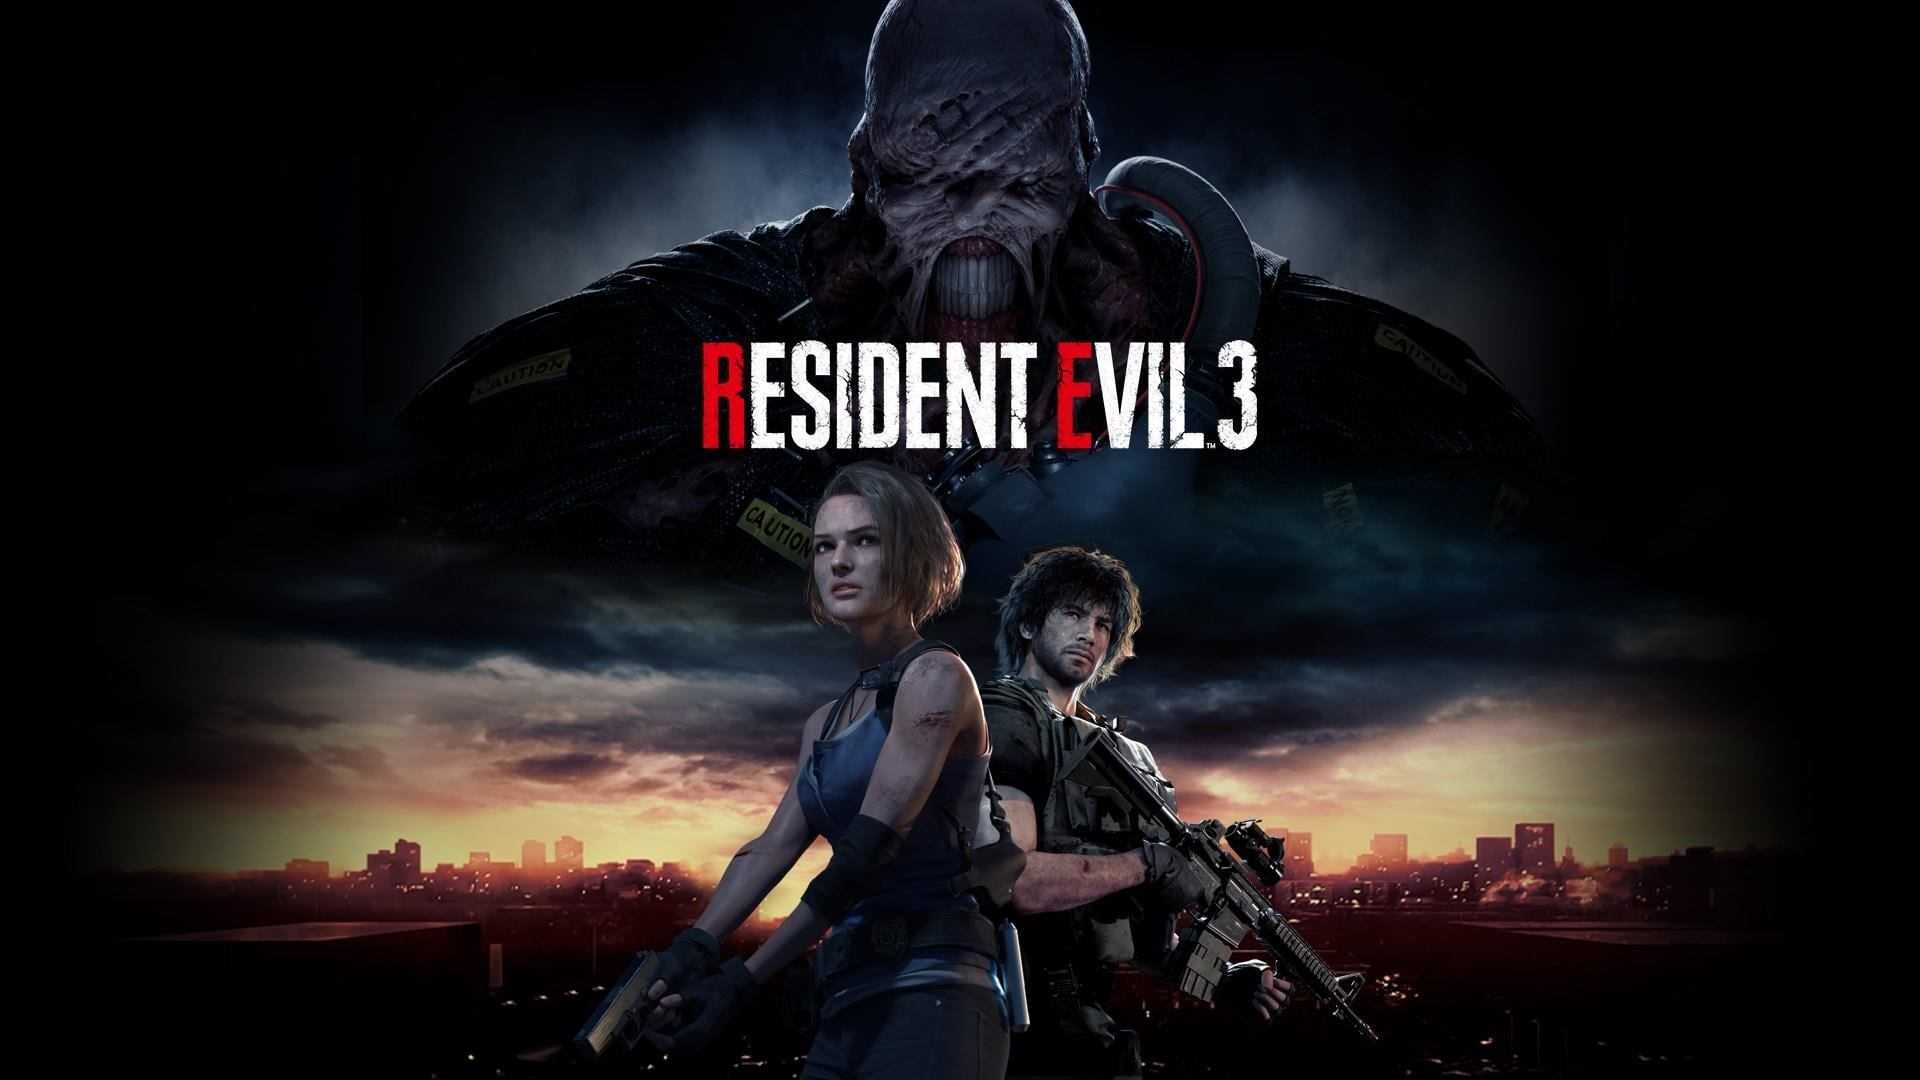 Resident Evil 3: our walkthrough and our guides to finish it during containment